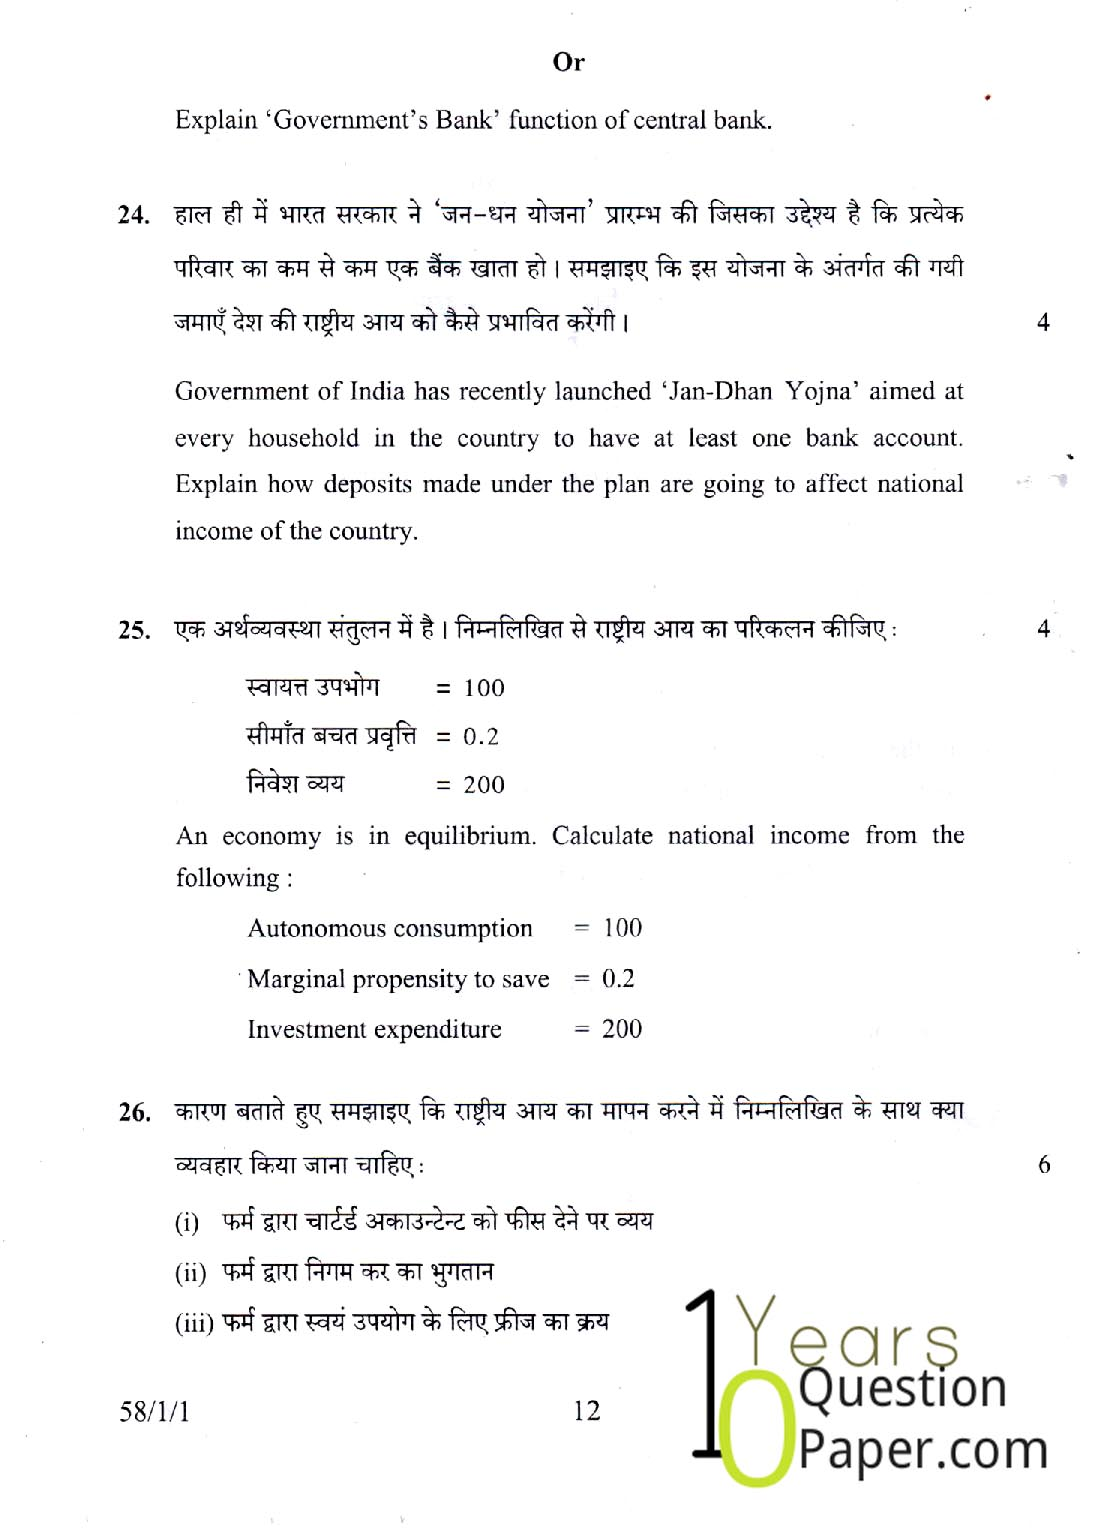 cbse class 12th 2015 Economics Boards question paper